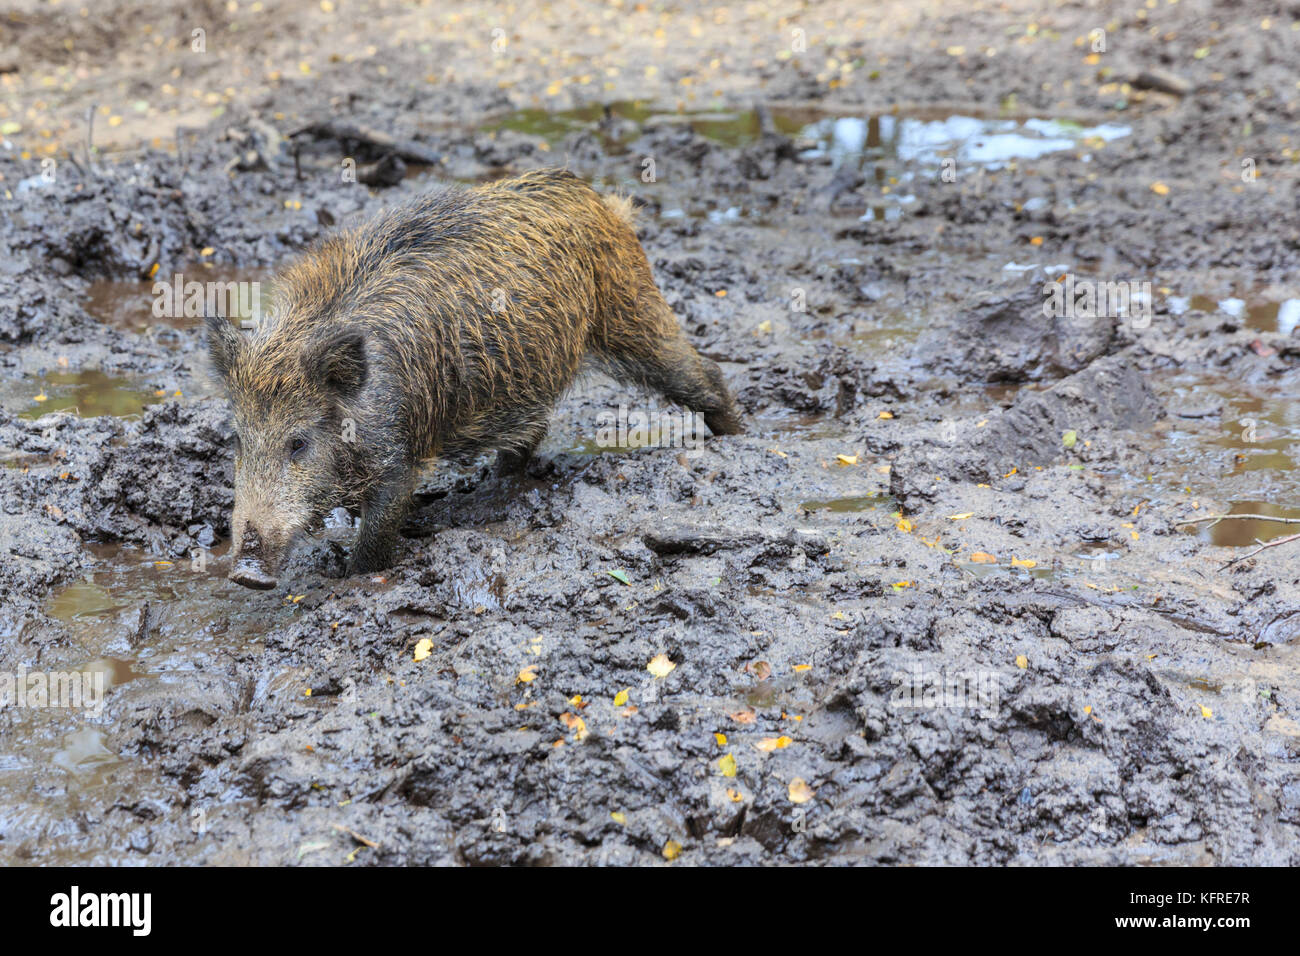 Central European wild boar (sus scrofa) juvennile, young animal, also known as wild swine or Eurasian wild pig, - Stock Image